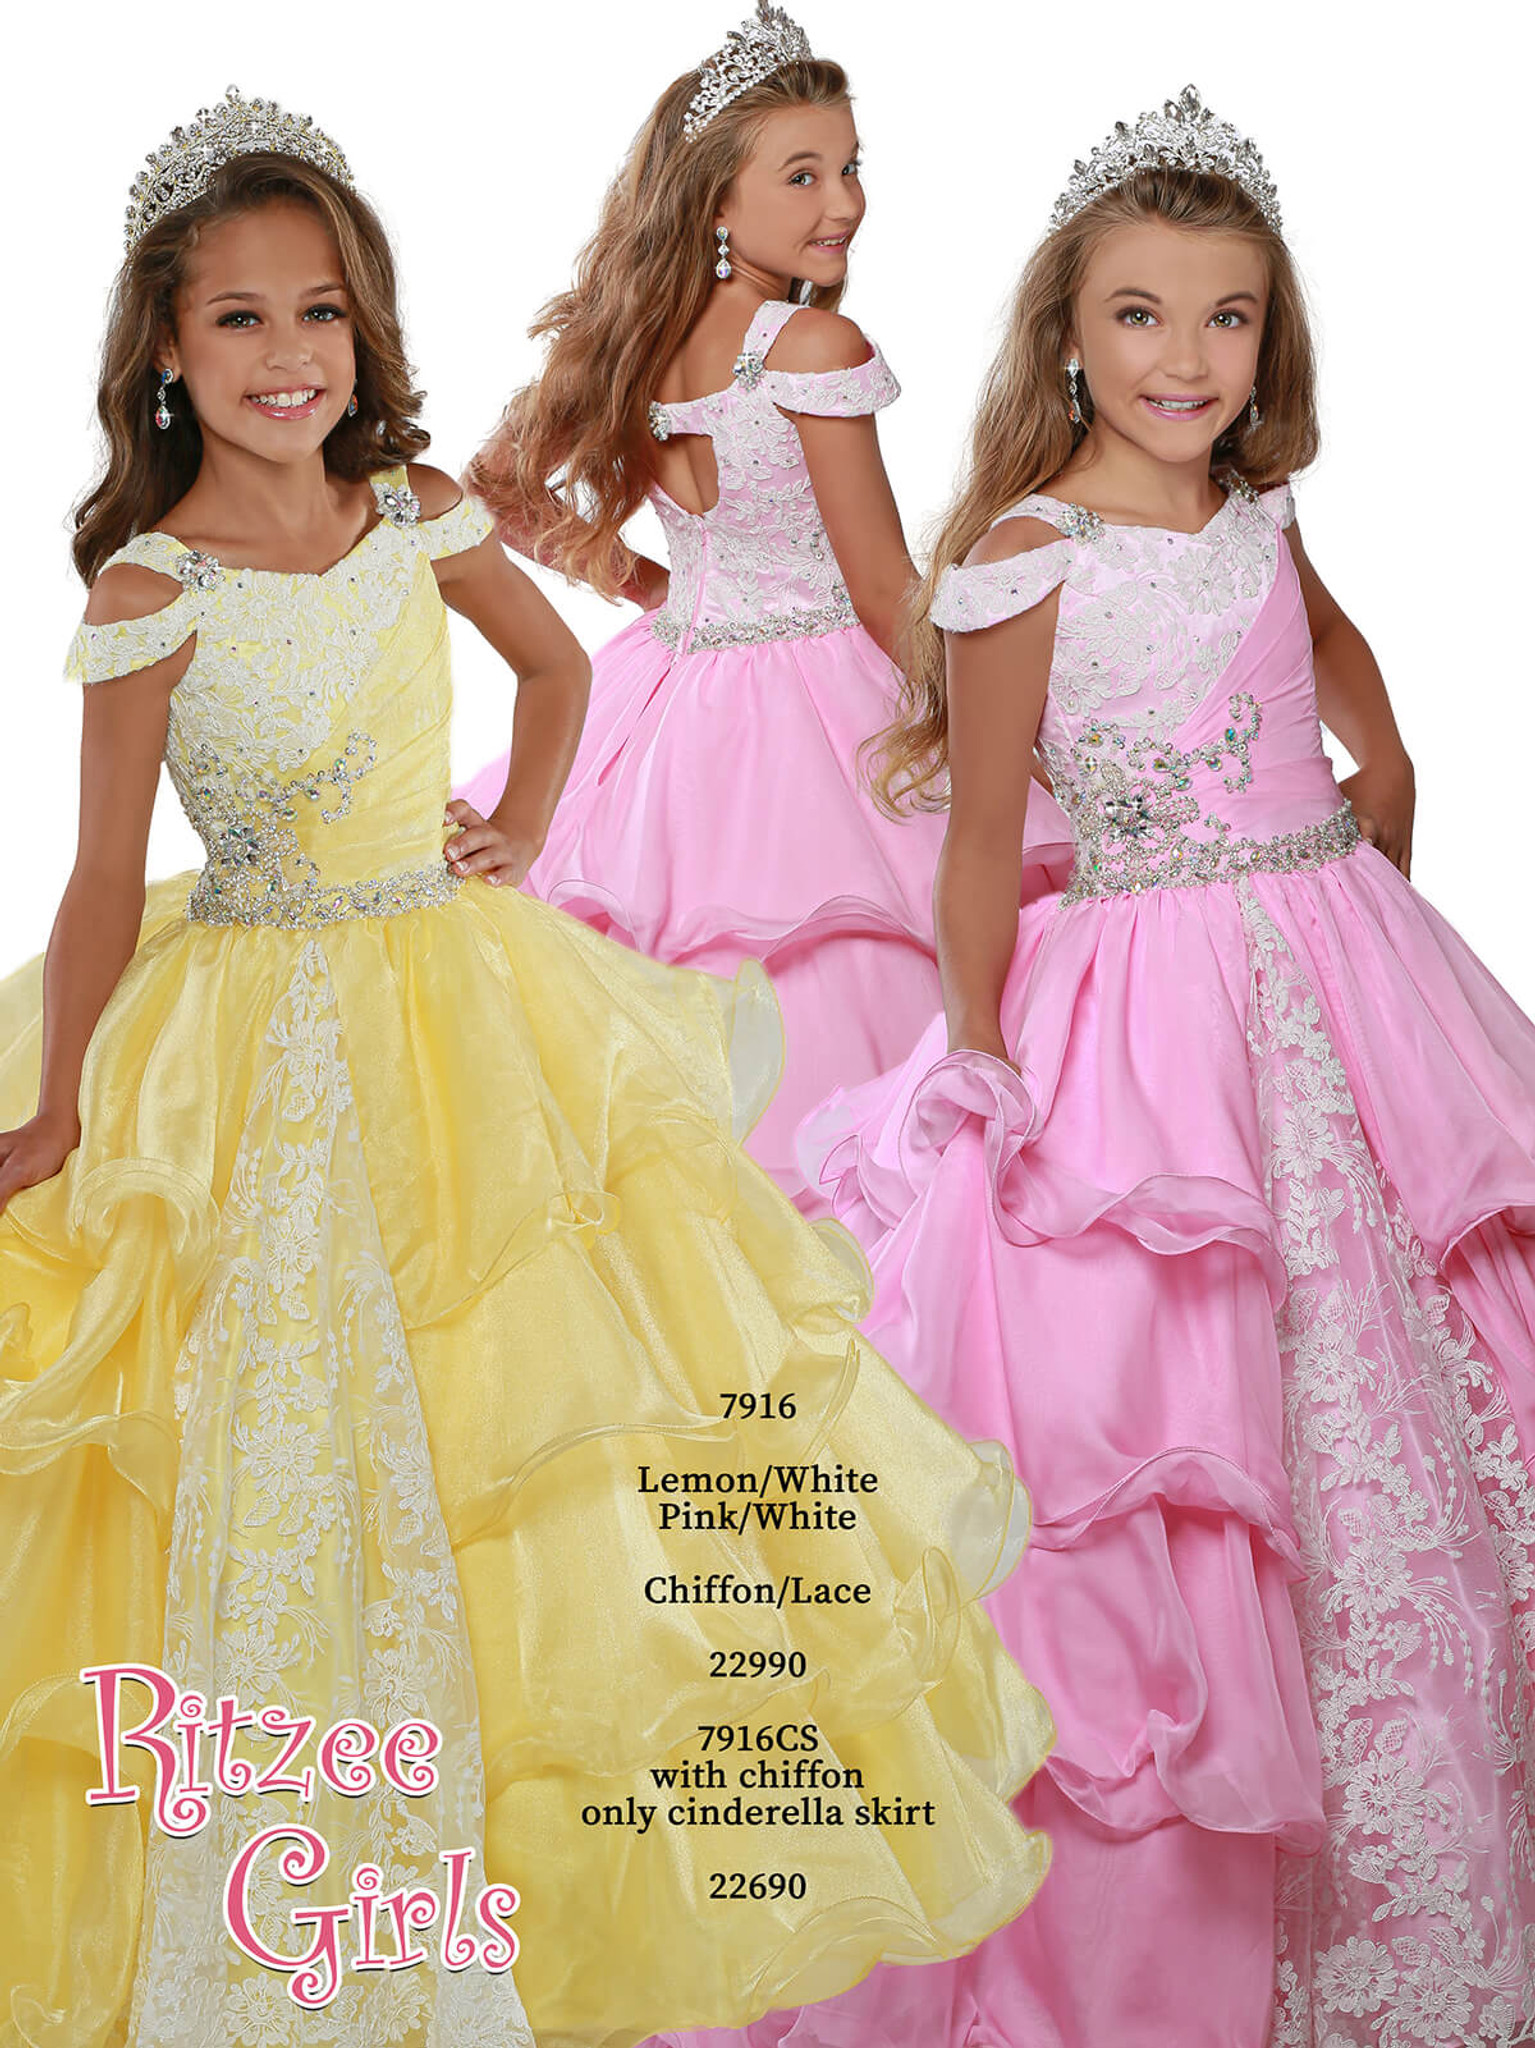 Ball Gown Ritzee Girls 7916 Pageant Dress PageantDesigns